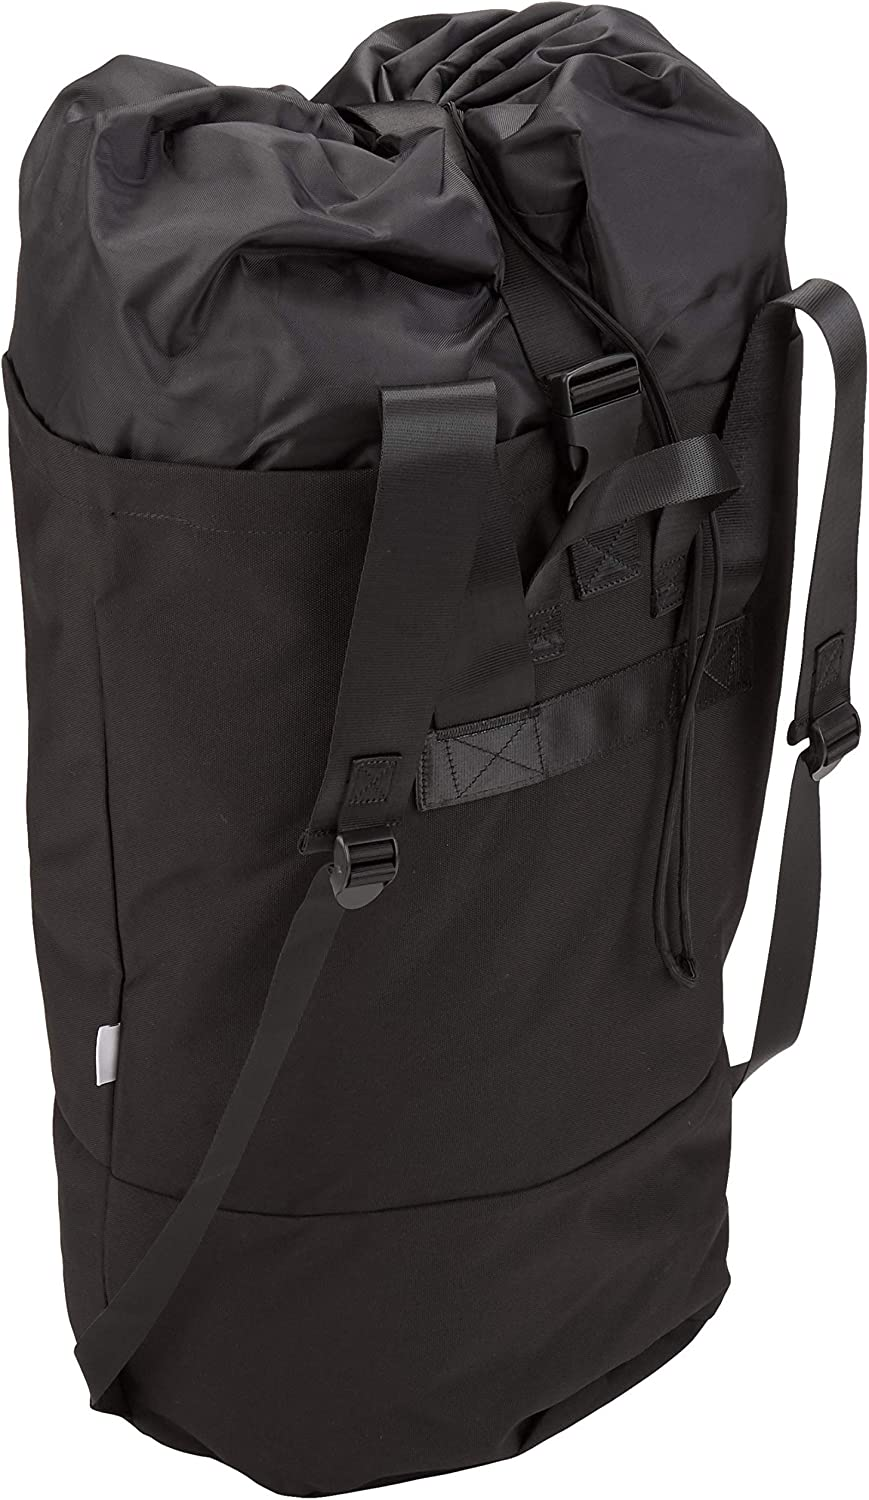 StramperBAG | Laundry Bag | College Laundry Backpack and Hamper | (Black (NO Zipper), Polyester & Polyester Blend)